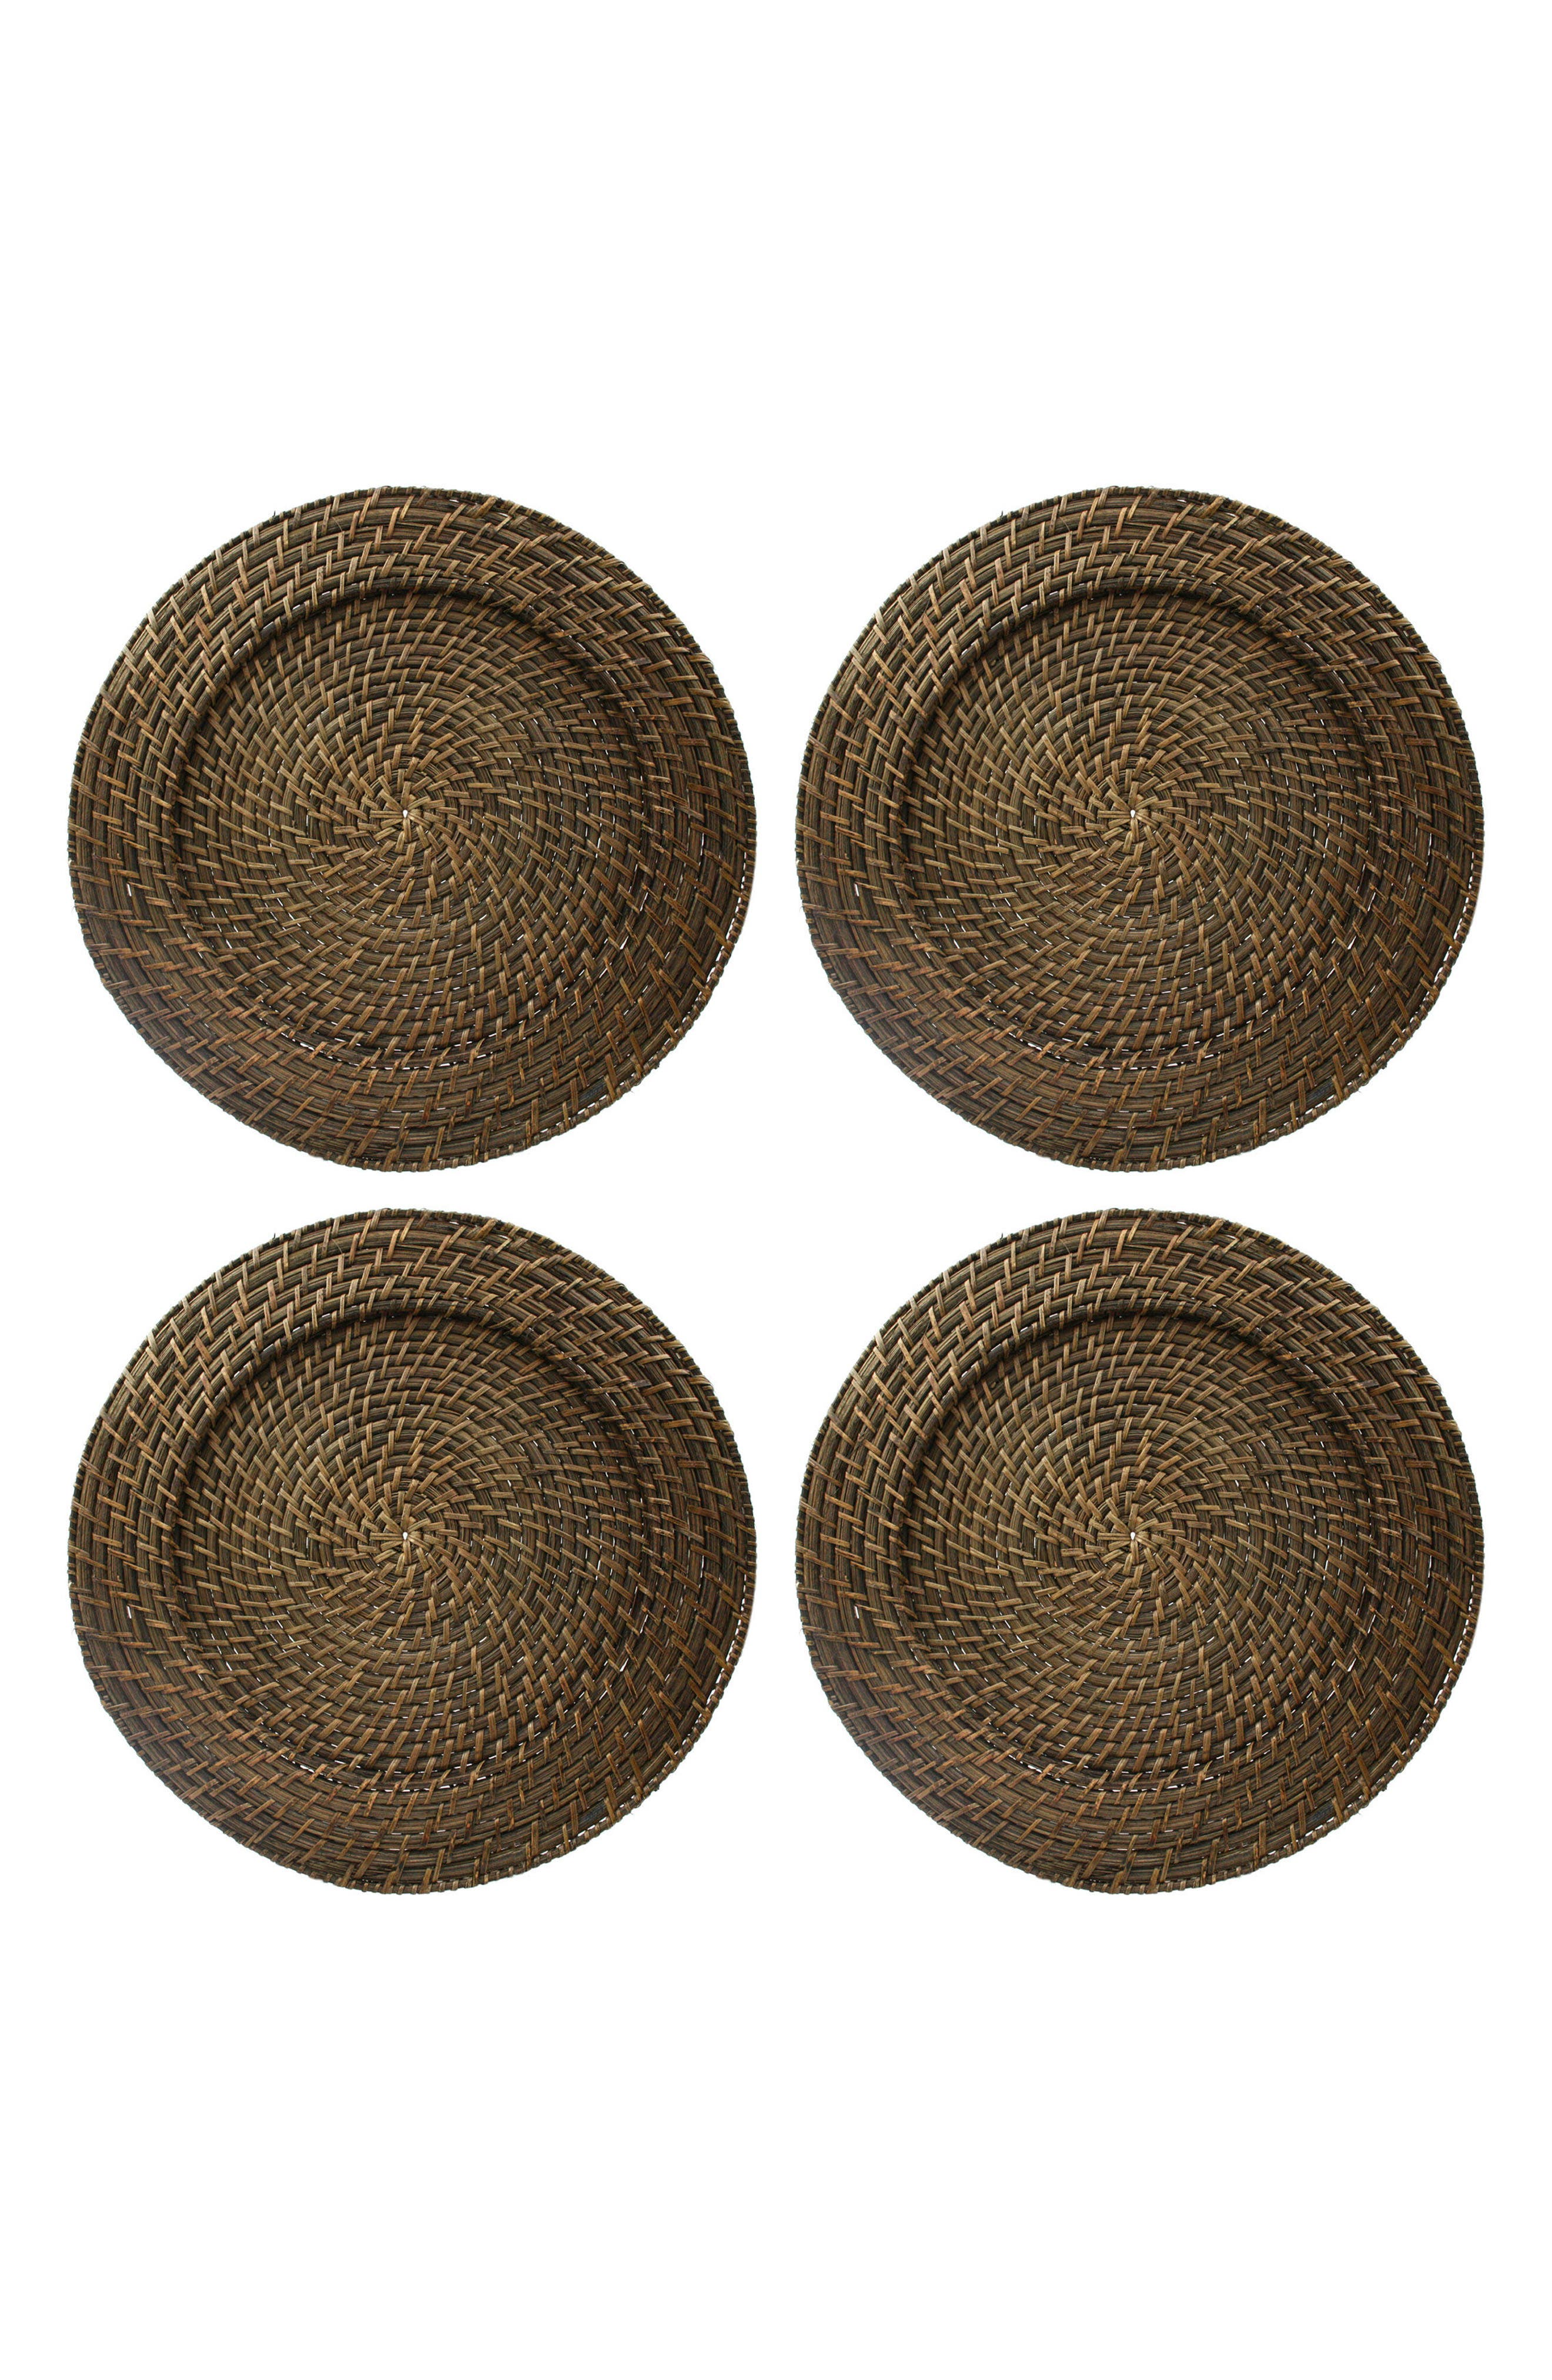 Alternate Image 1 Selected - American Atelier Set of 4 Rattan Charger Plates